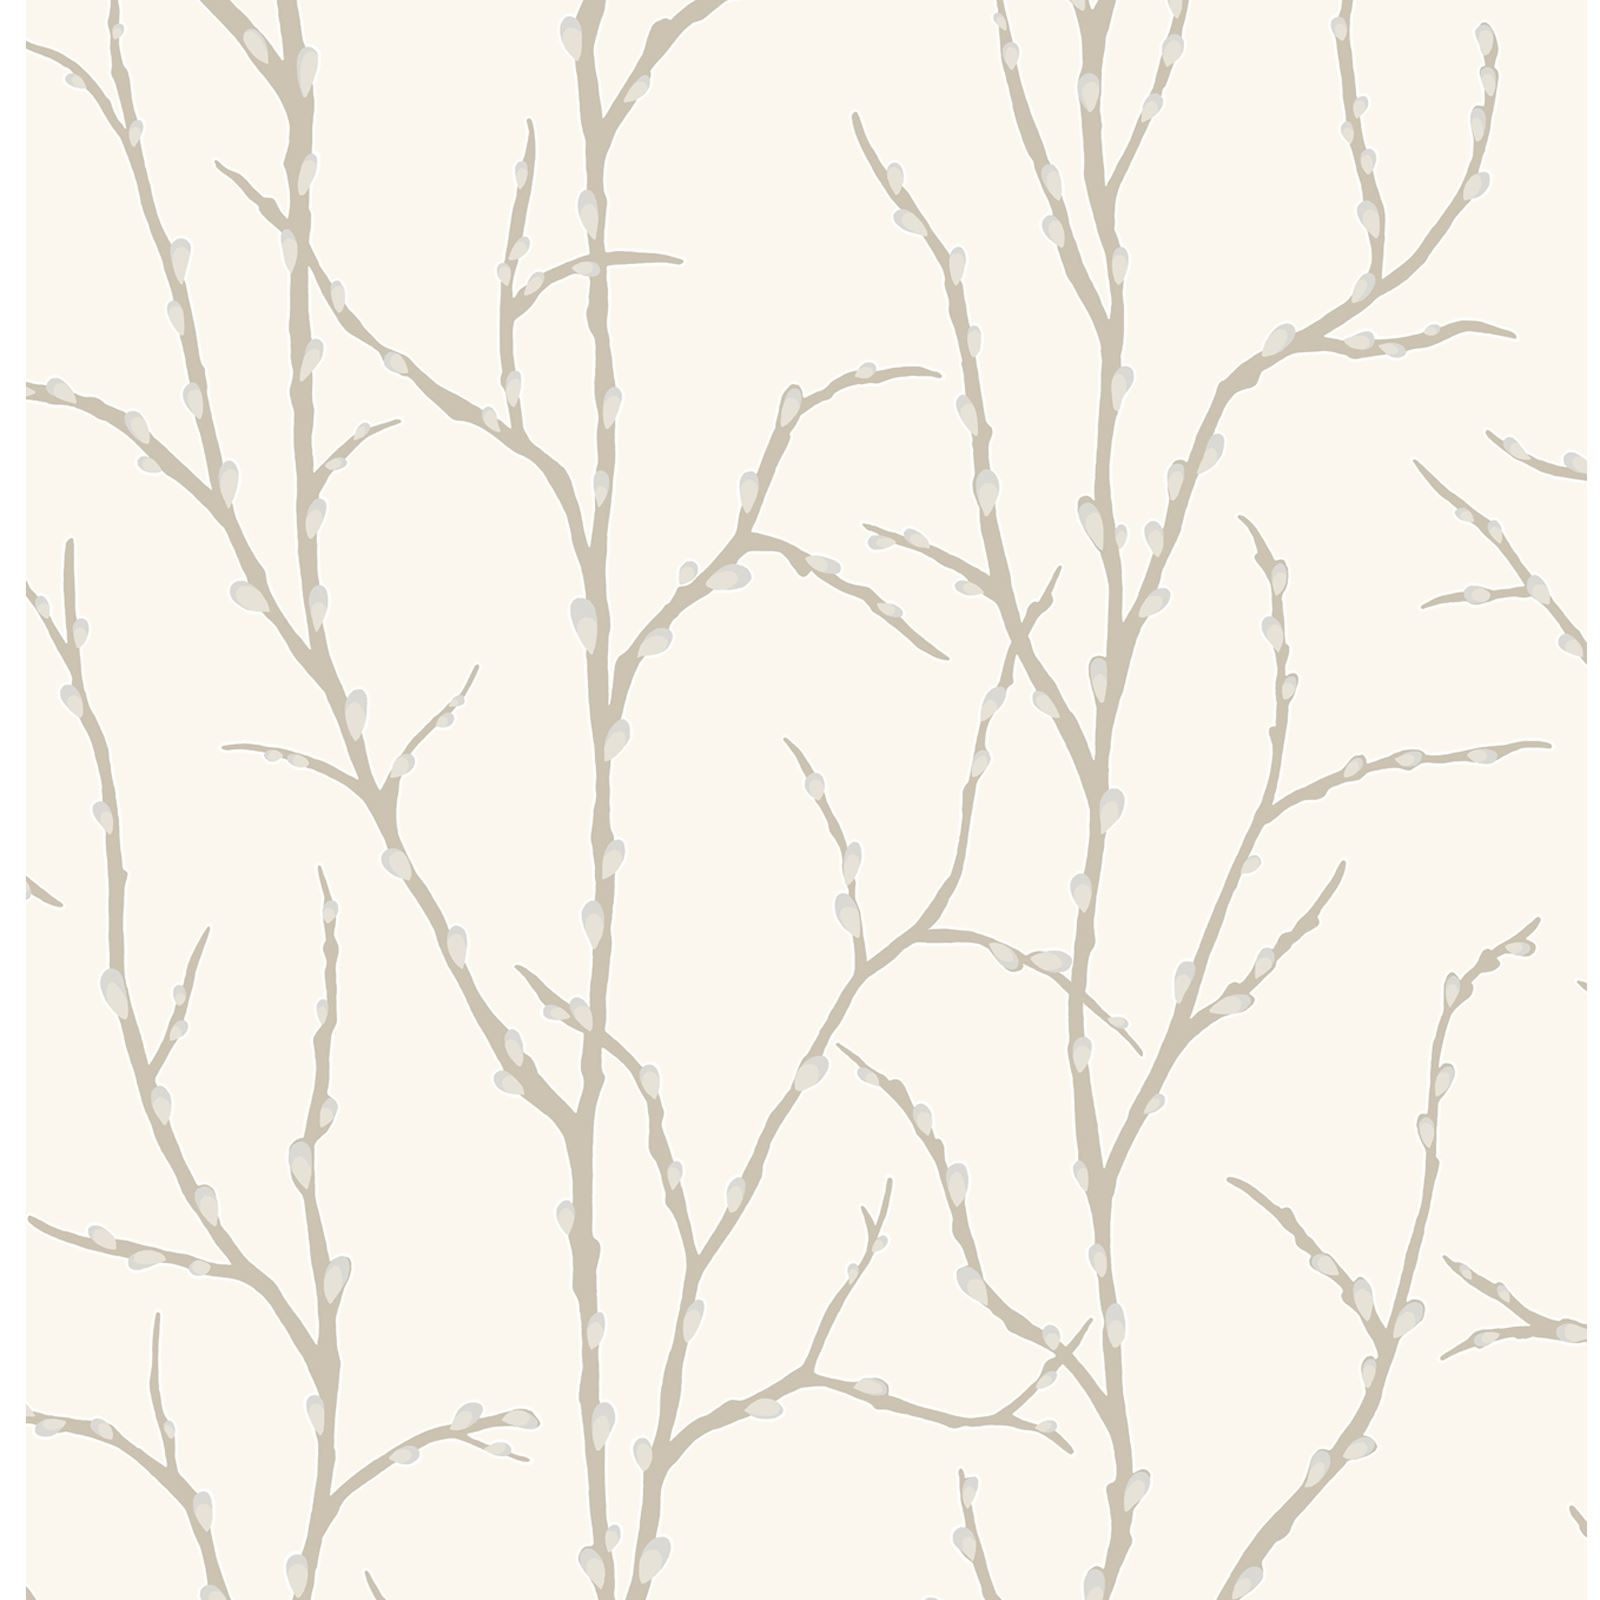 RASCH PUSSY WILLOW TREE WALLPAPER CREAM Amp CHARCOAL